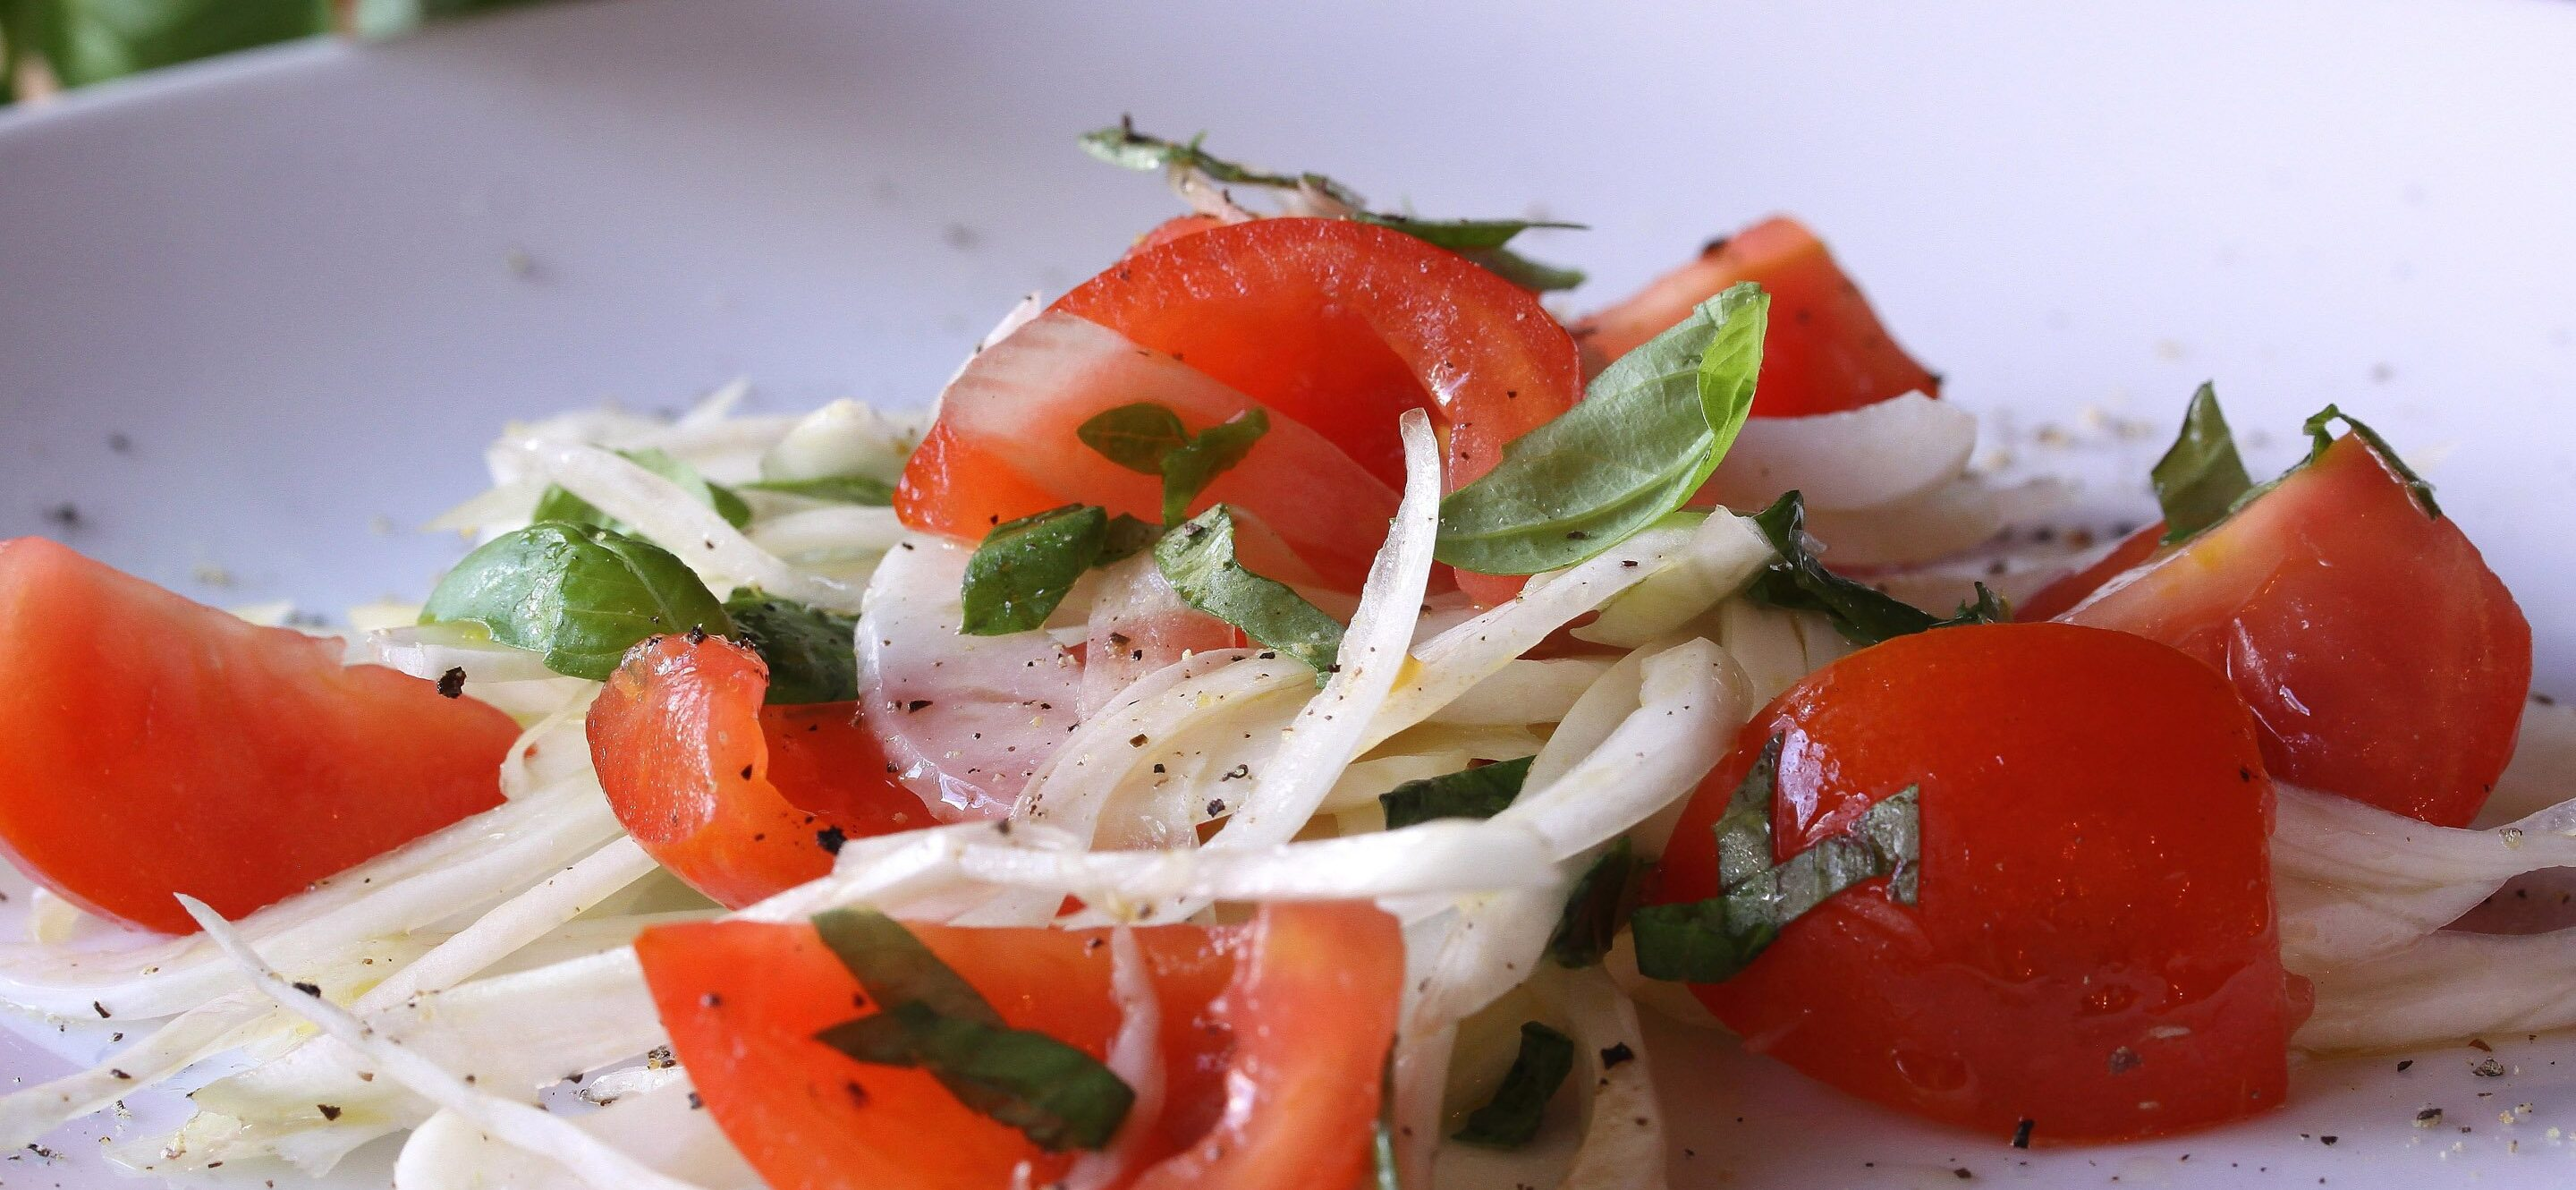 fennel tomatoes basil salad